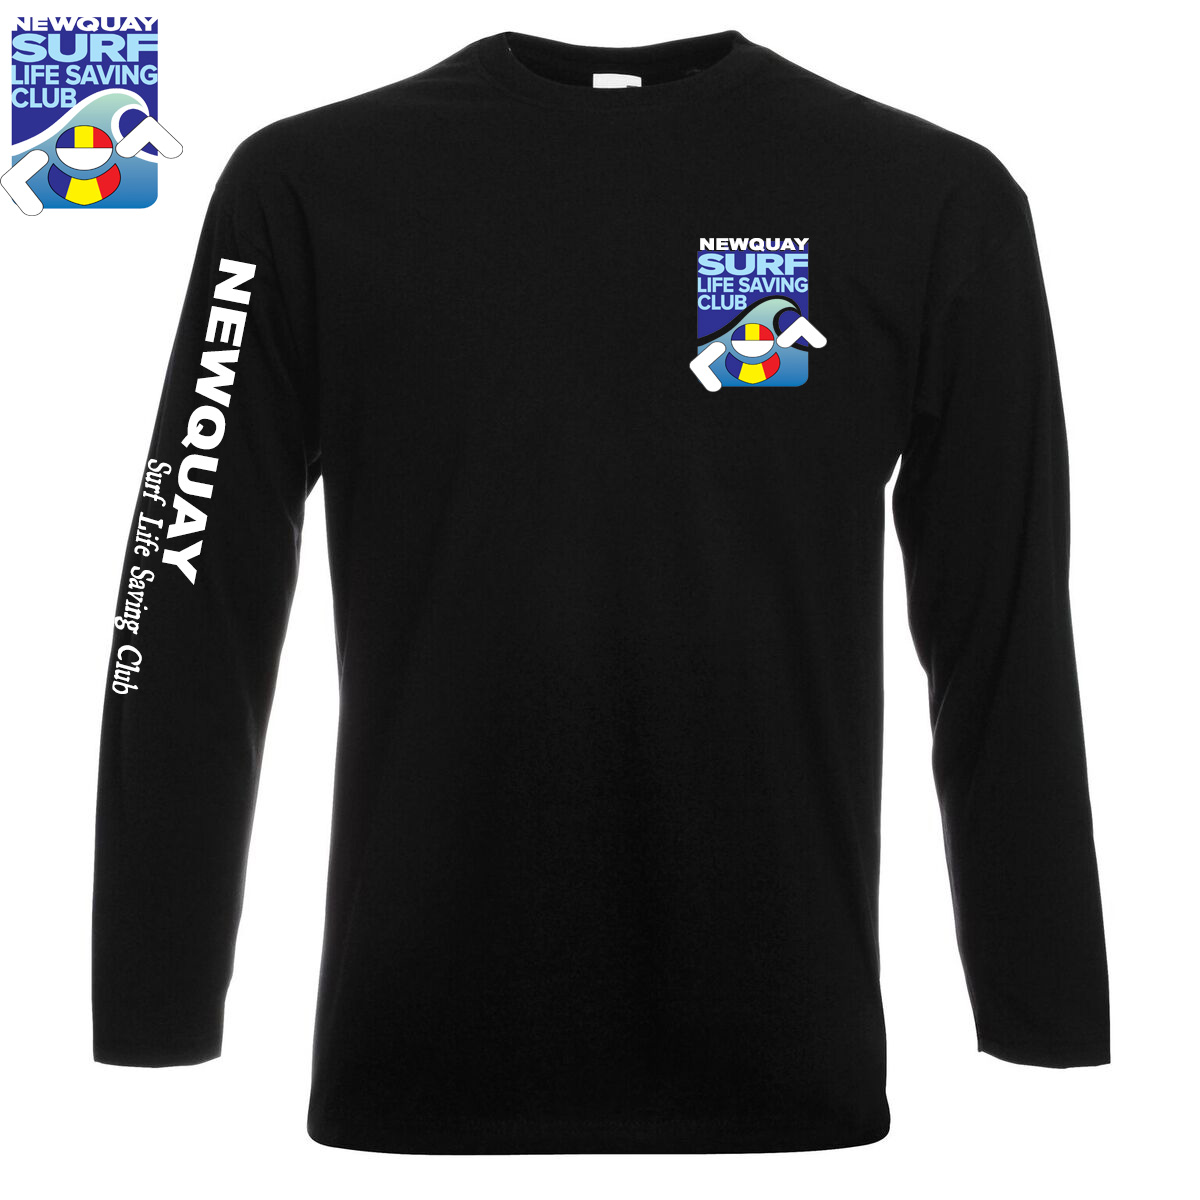 NSLSC Long Sleeved Tee Shirt Adults